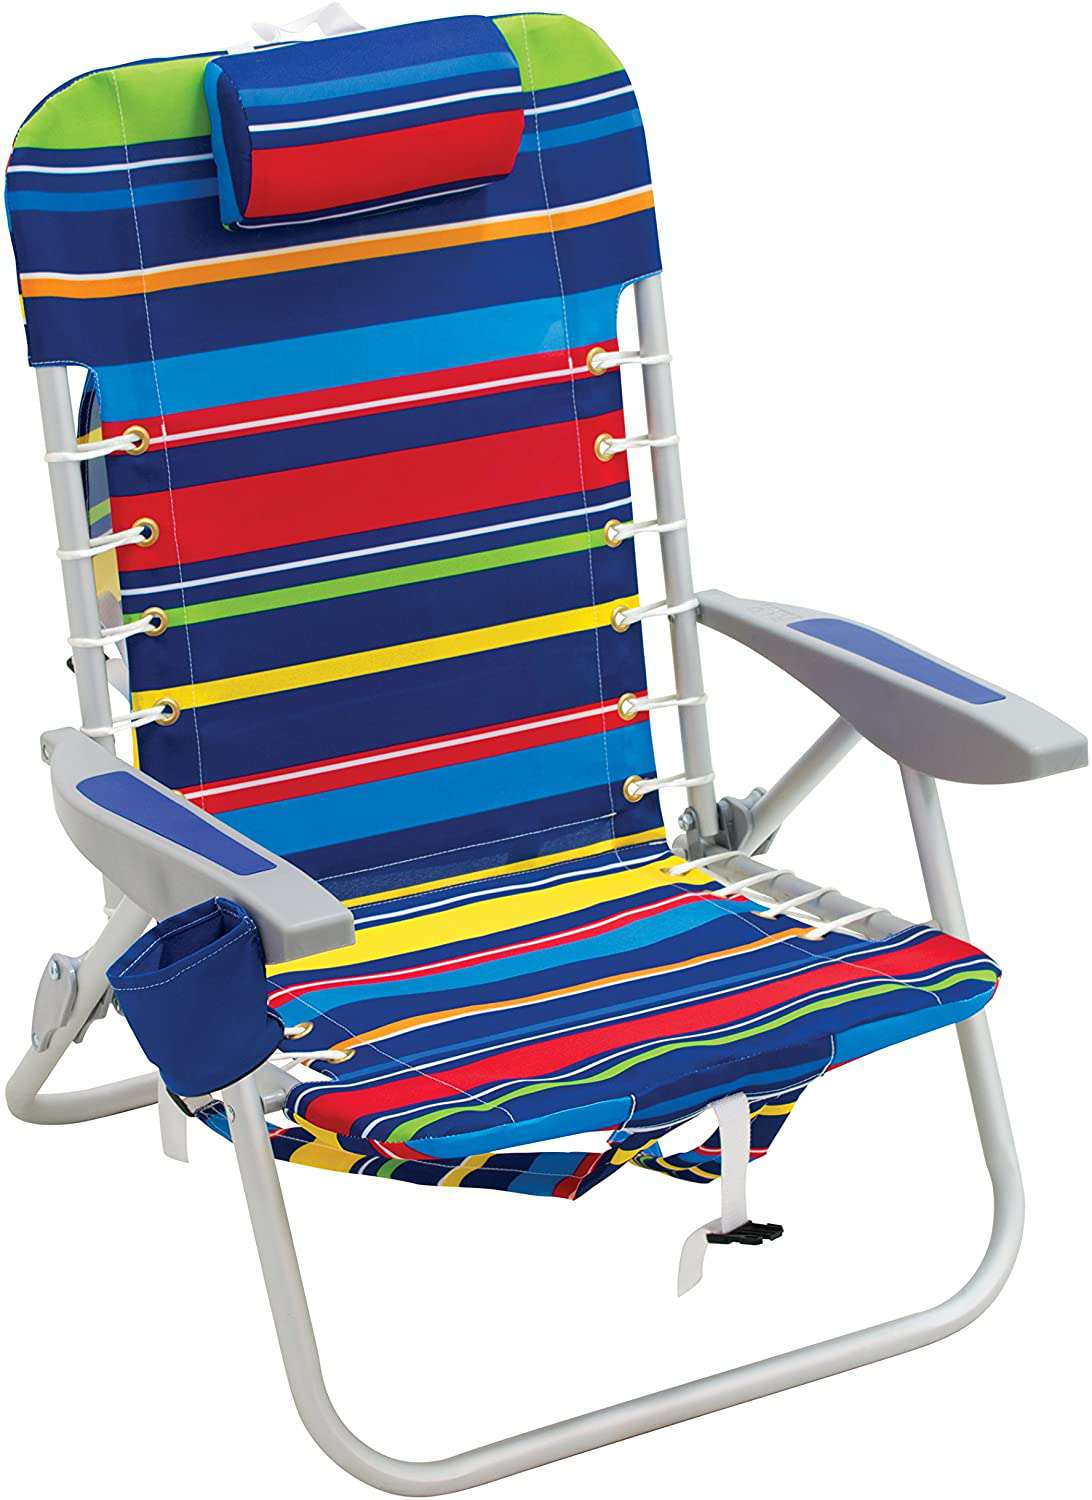 The 5 Best Beach Chairs Of 2021